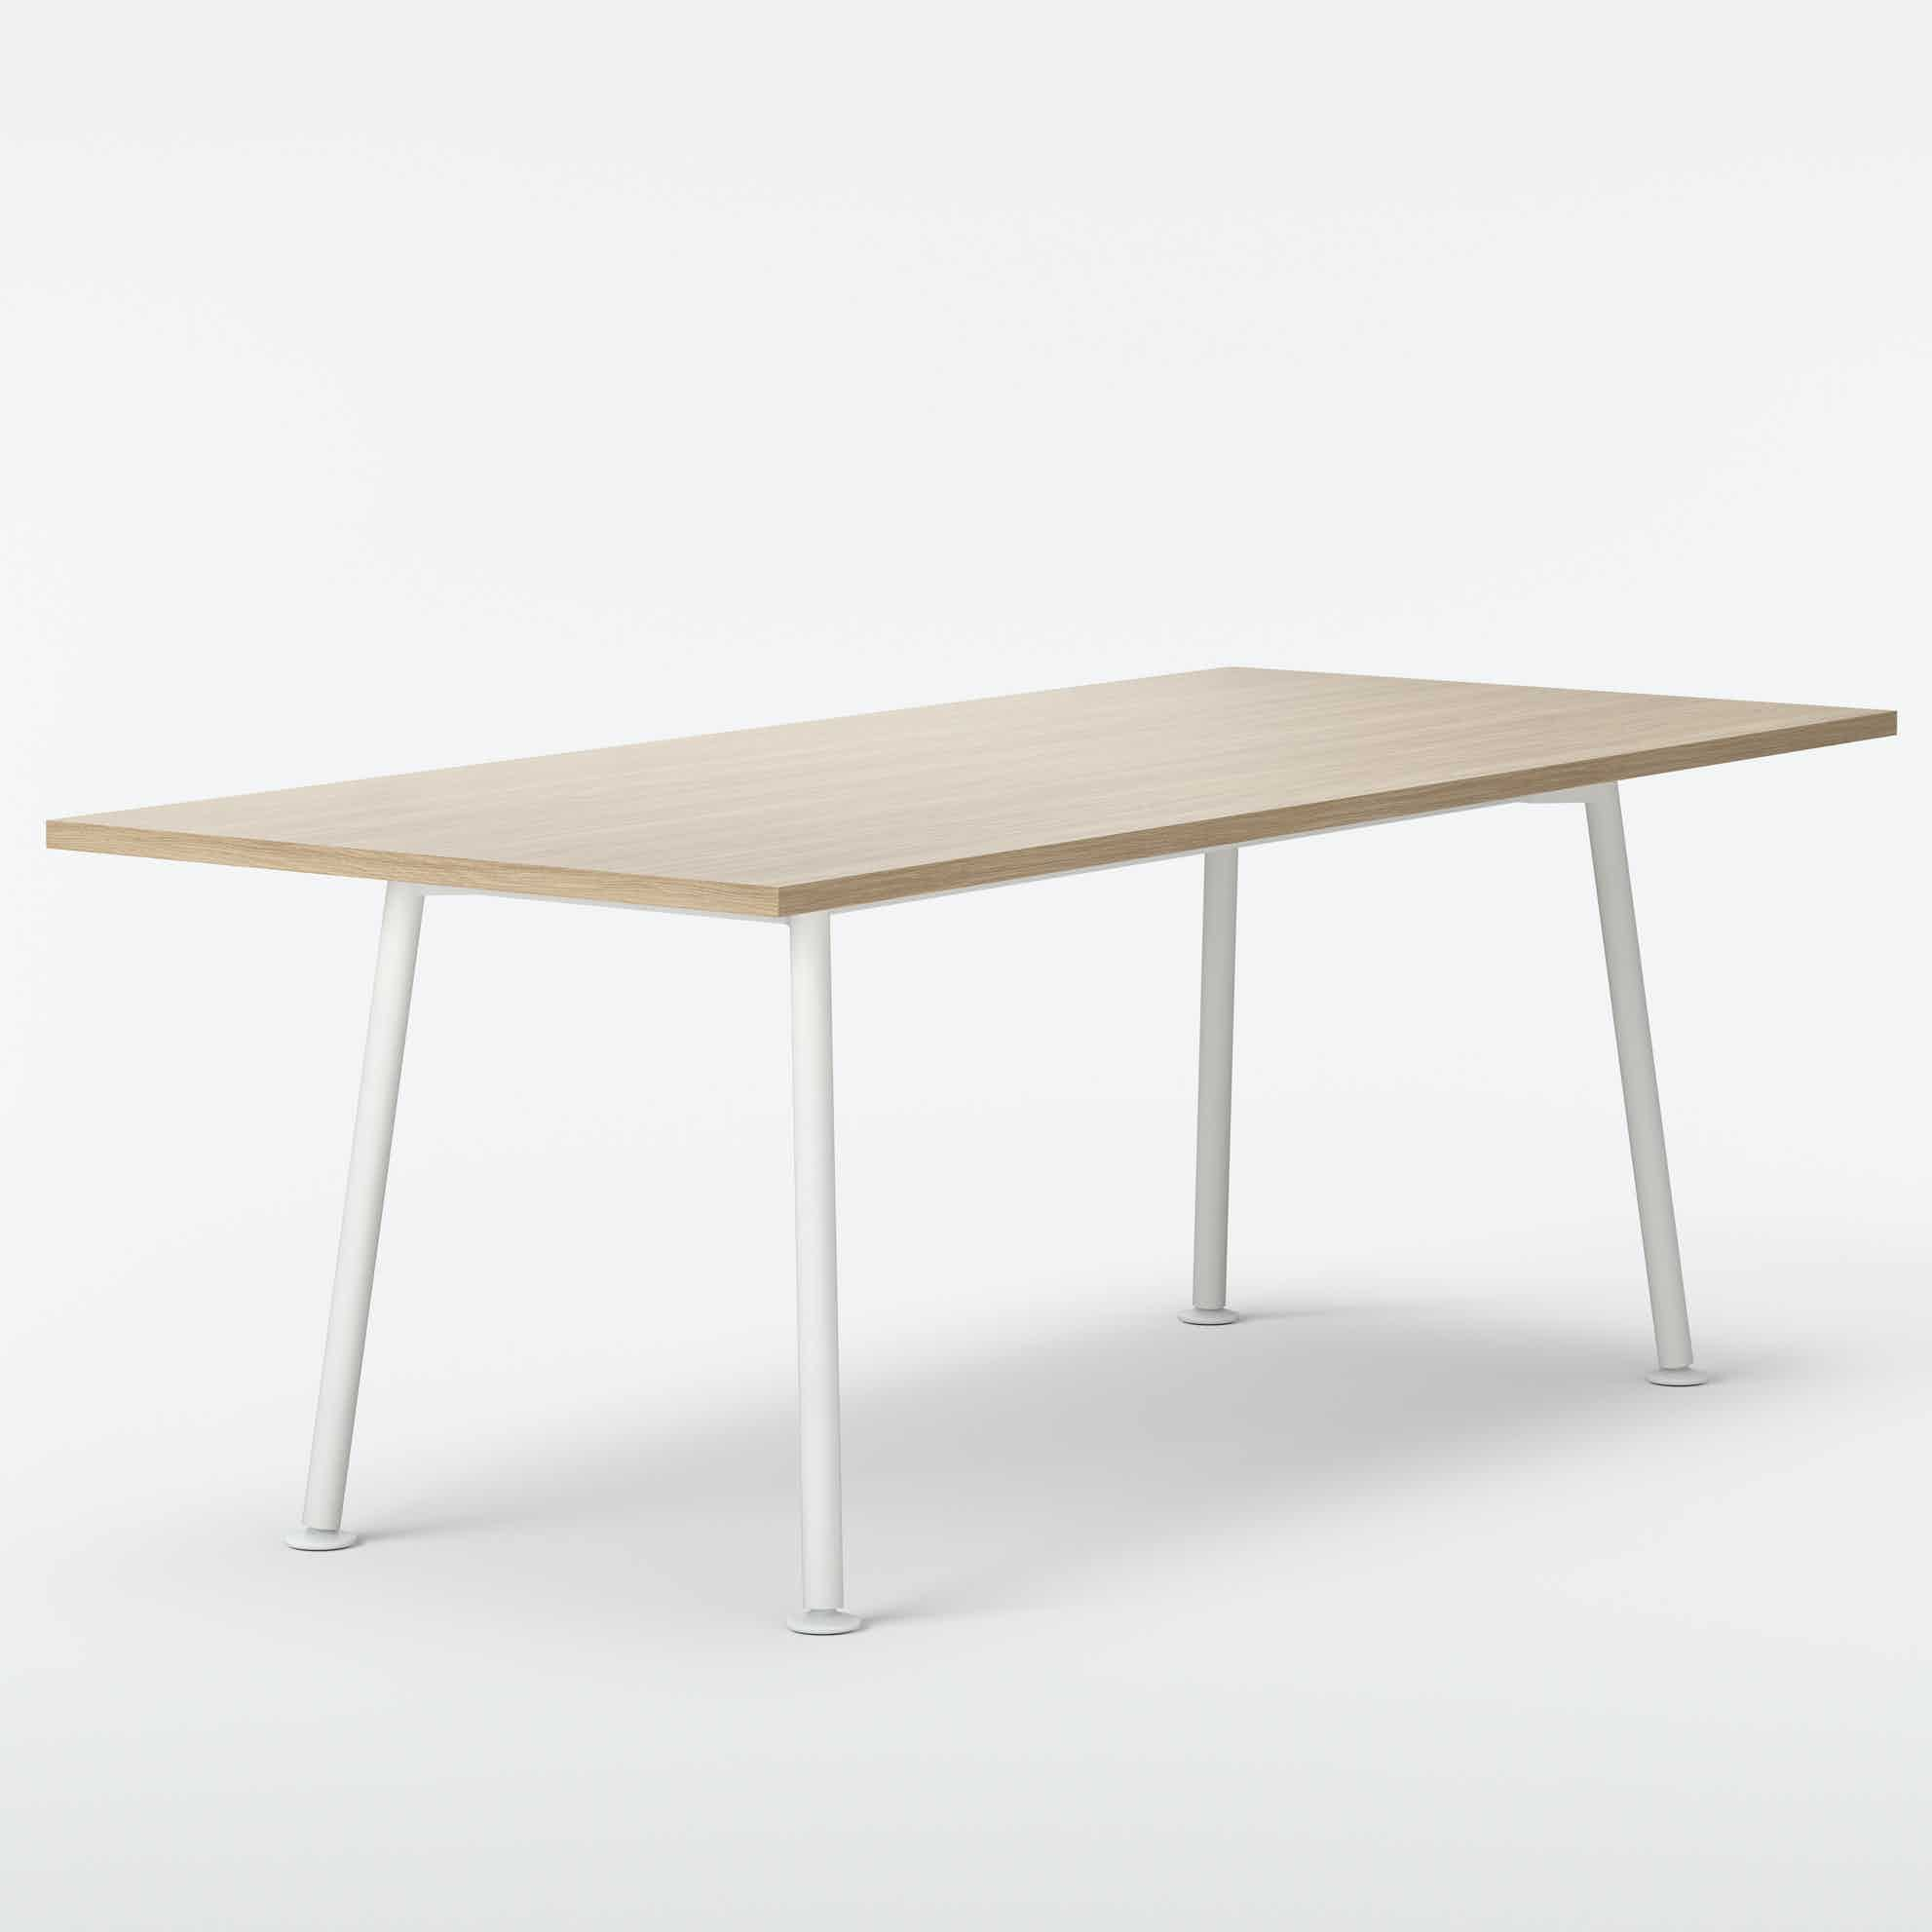 Massproductions landa table oak rectangle haute living